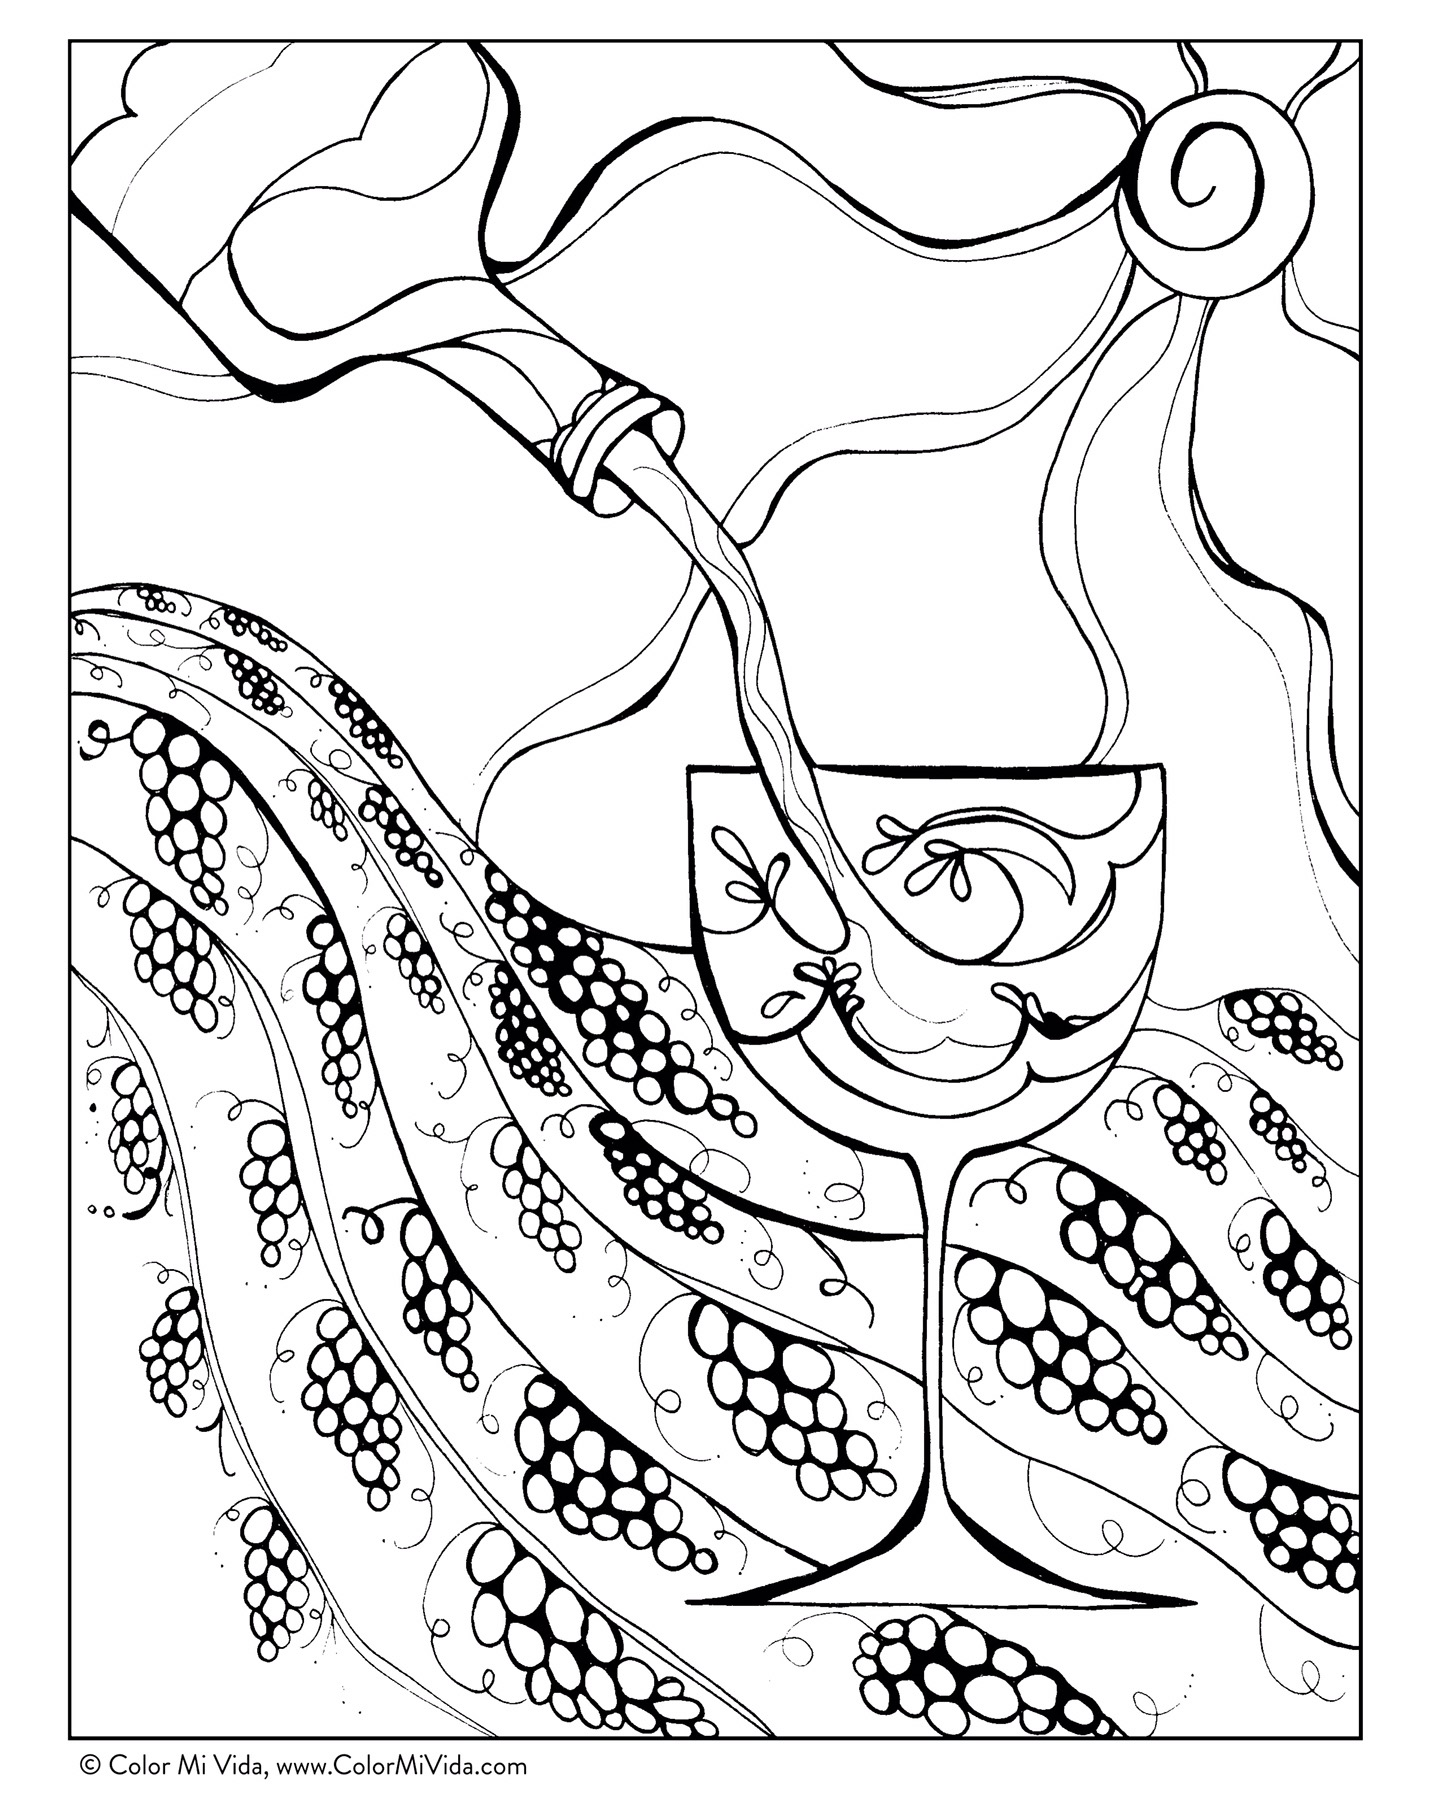 September Coloring Contest FREE Download In The Northern Hemisphere Grape Season Is Harvest Lets Celebrate By Relaxing And Adding A Splash Of Color To